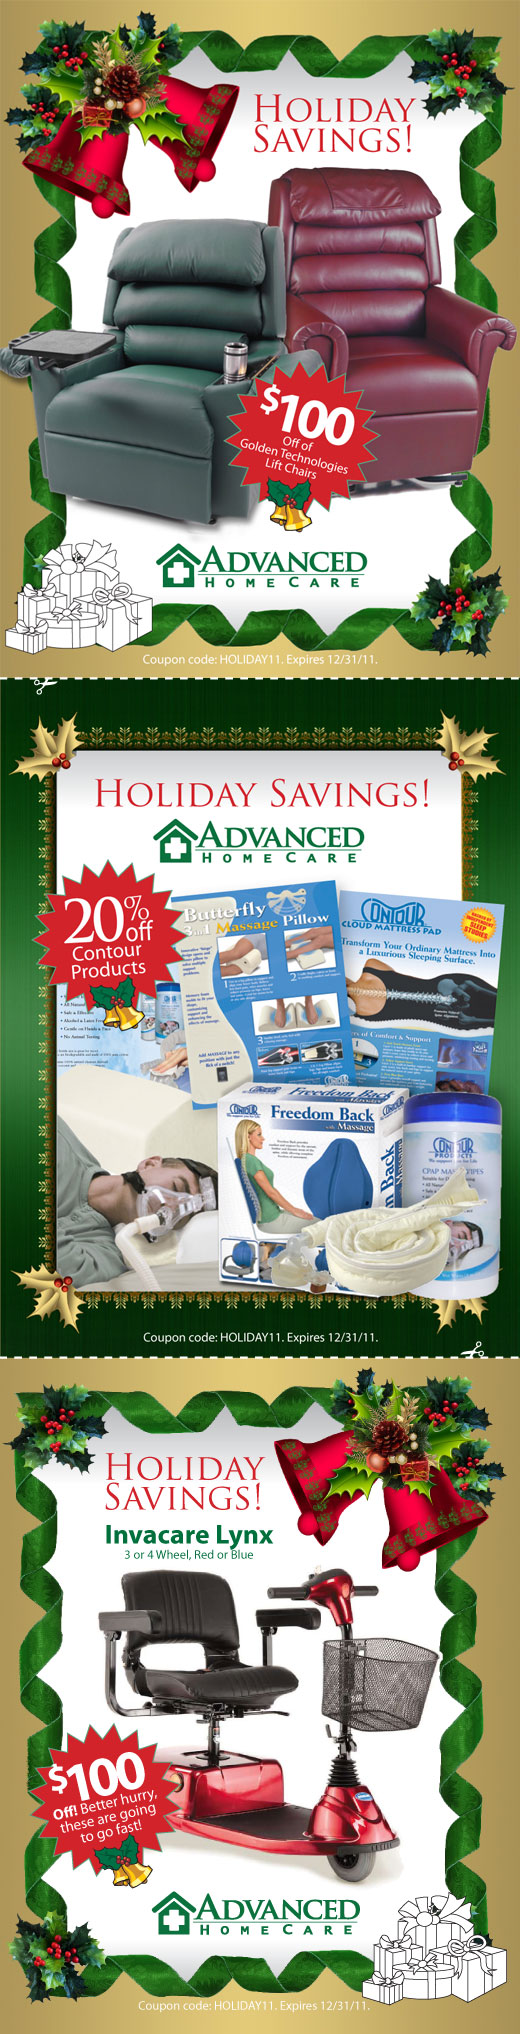 2011 Holiday Coupon